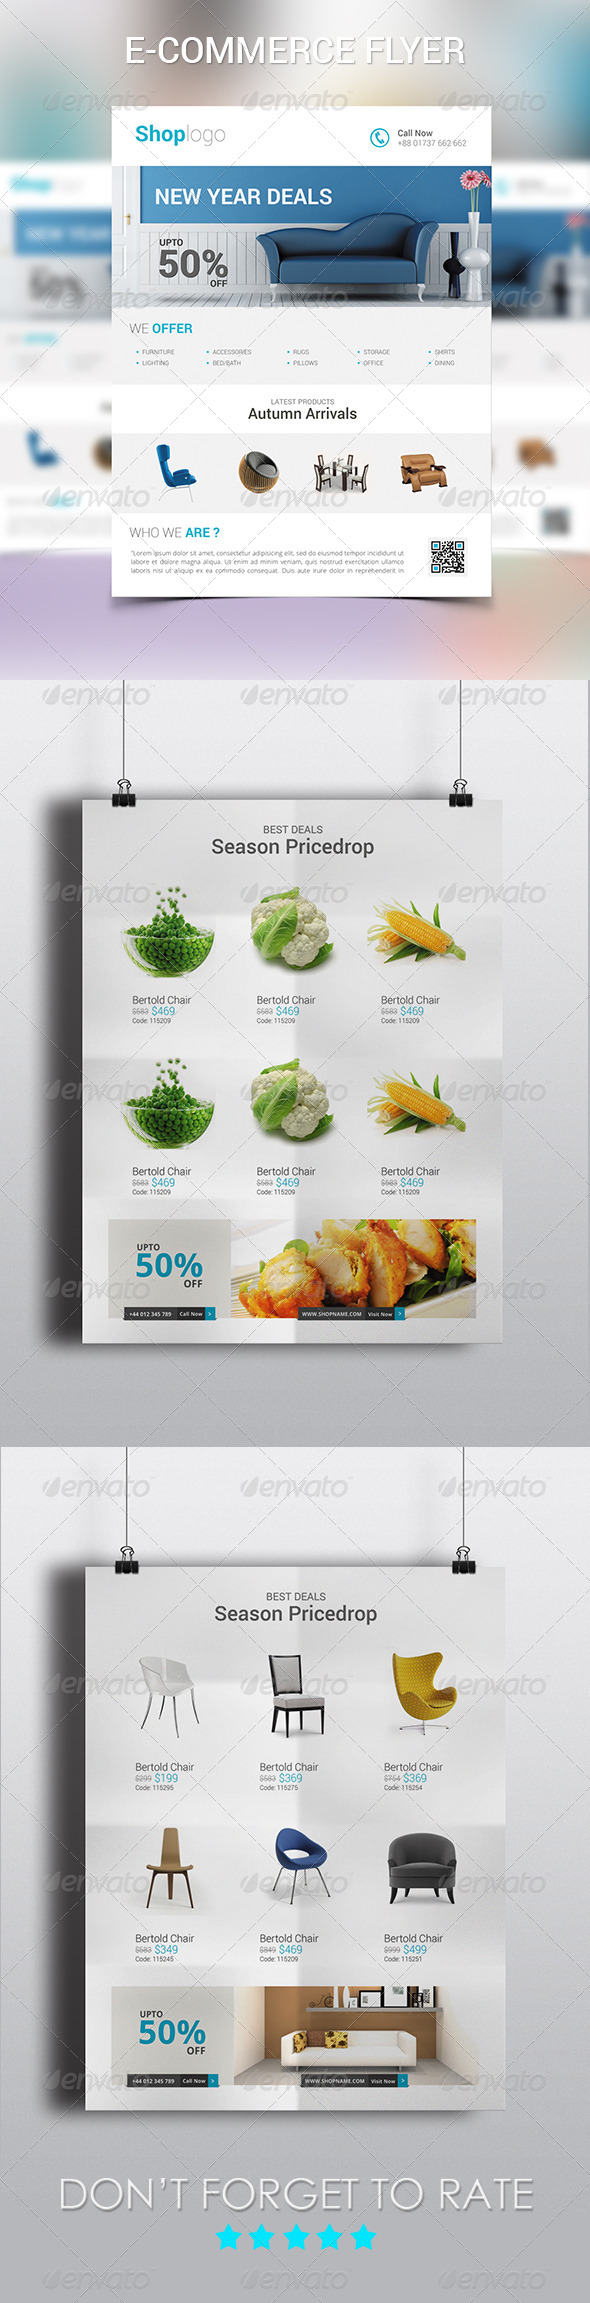 GraphicRiver New Year Deals E-Commerce Flyer 6386836